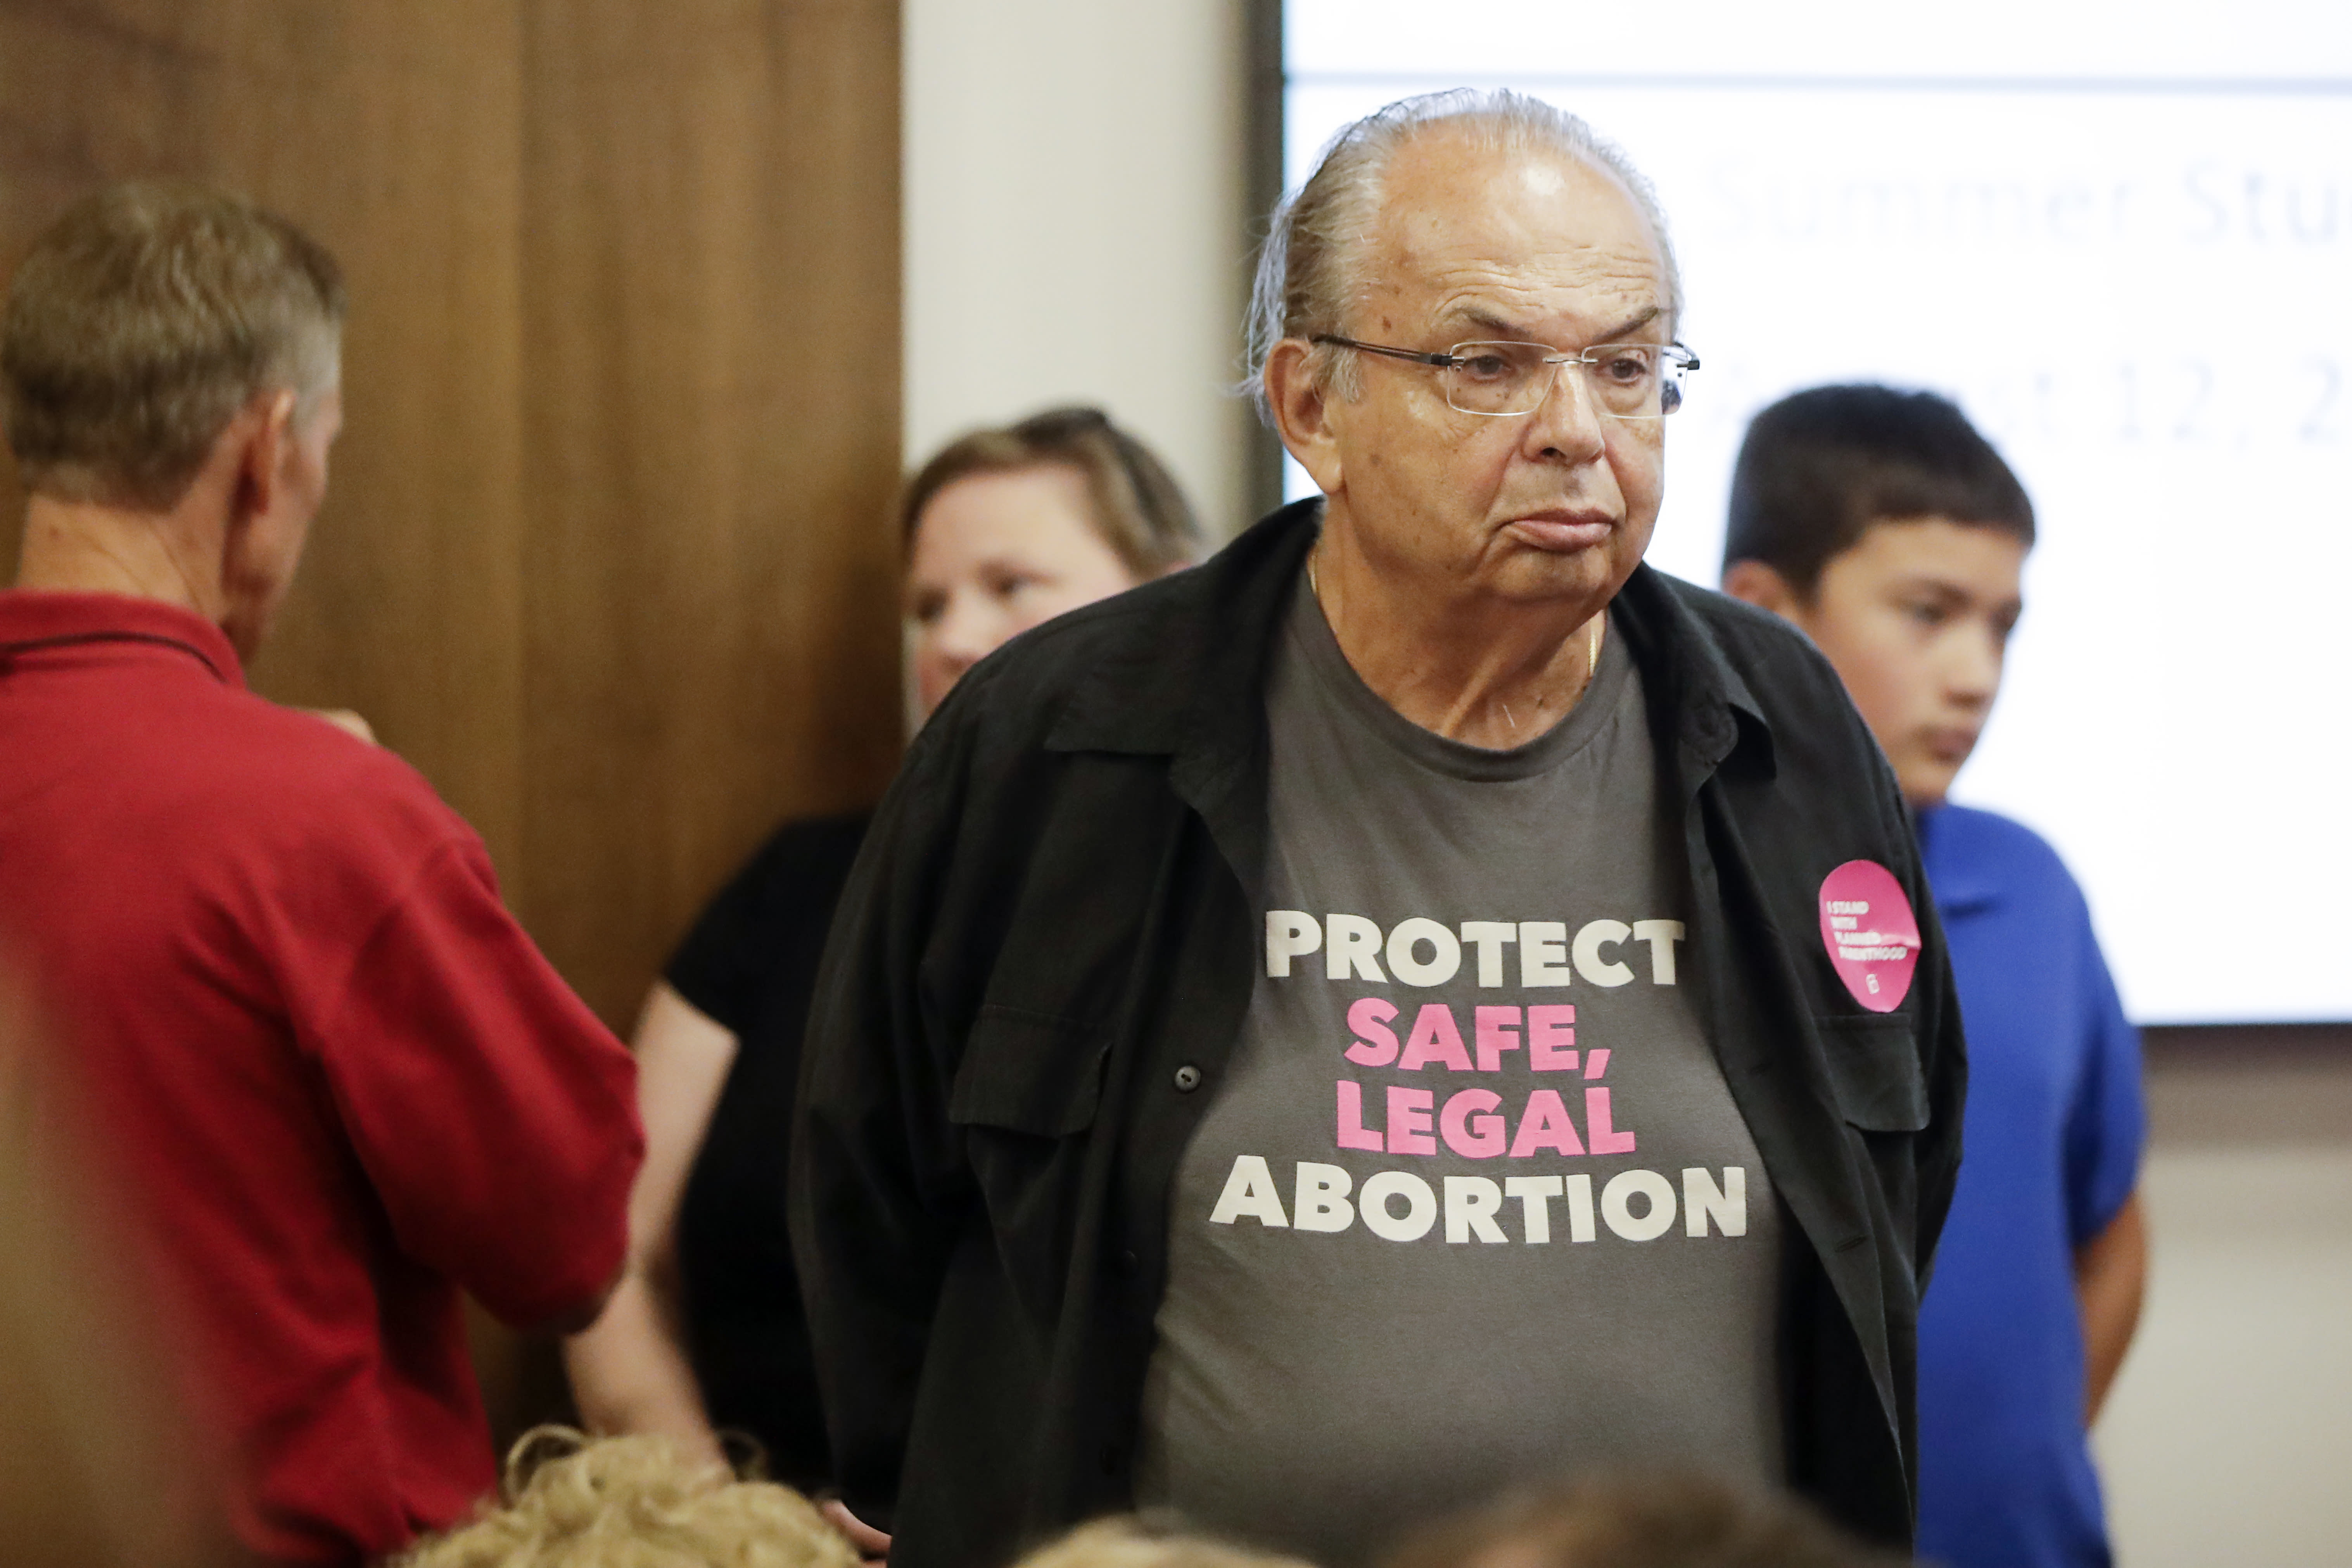 People wait for the start of a Senate hearing to discuss a fetal heartbeat abortion ban, or possibly something more restrictive, Monday, Aug. 12, 2019, in Nashville, Tenn. (AP Photo/Mark Humphrey)